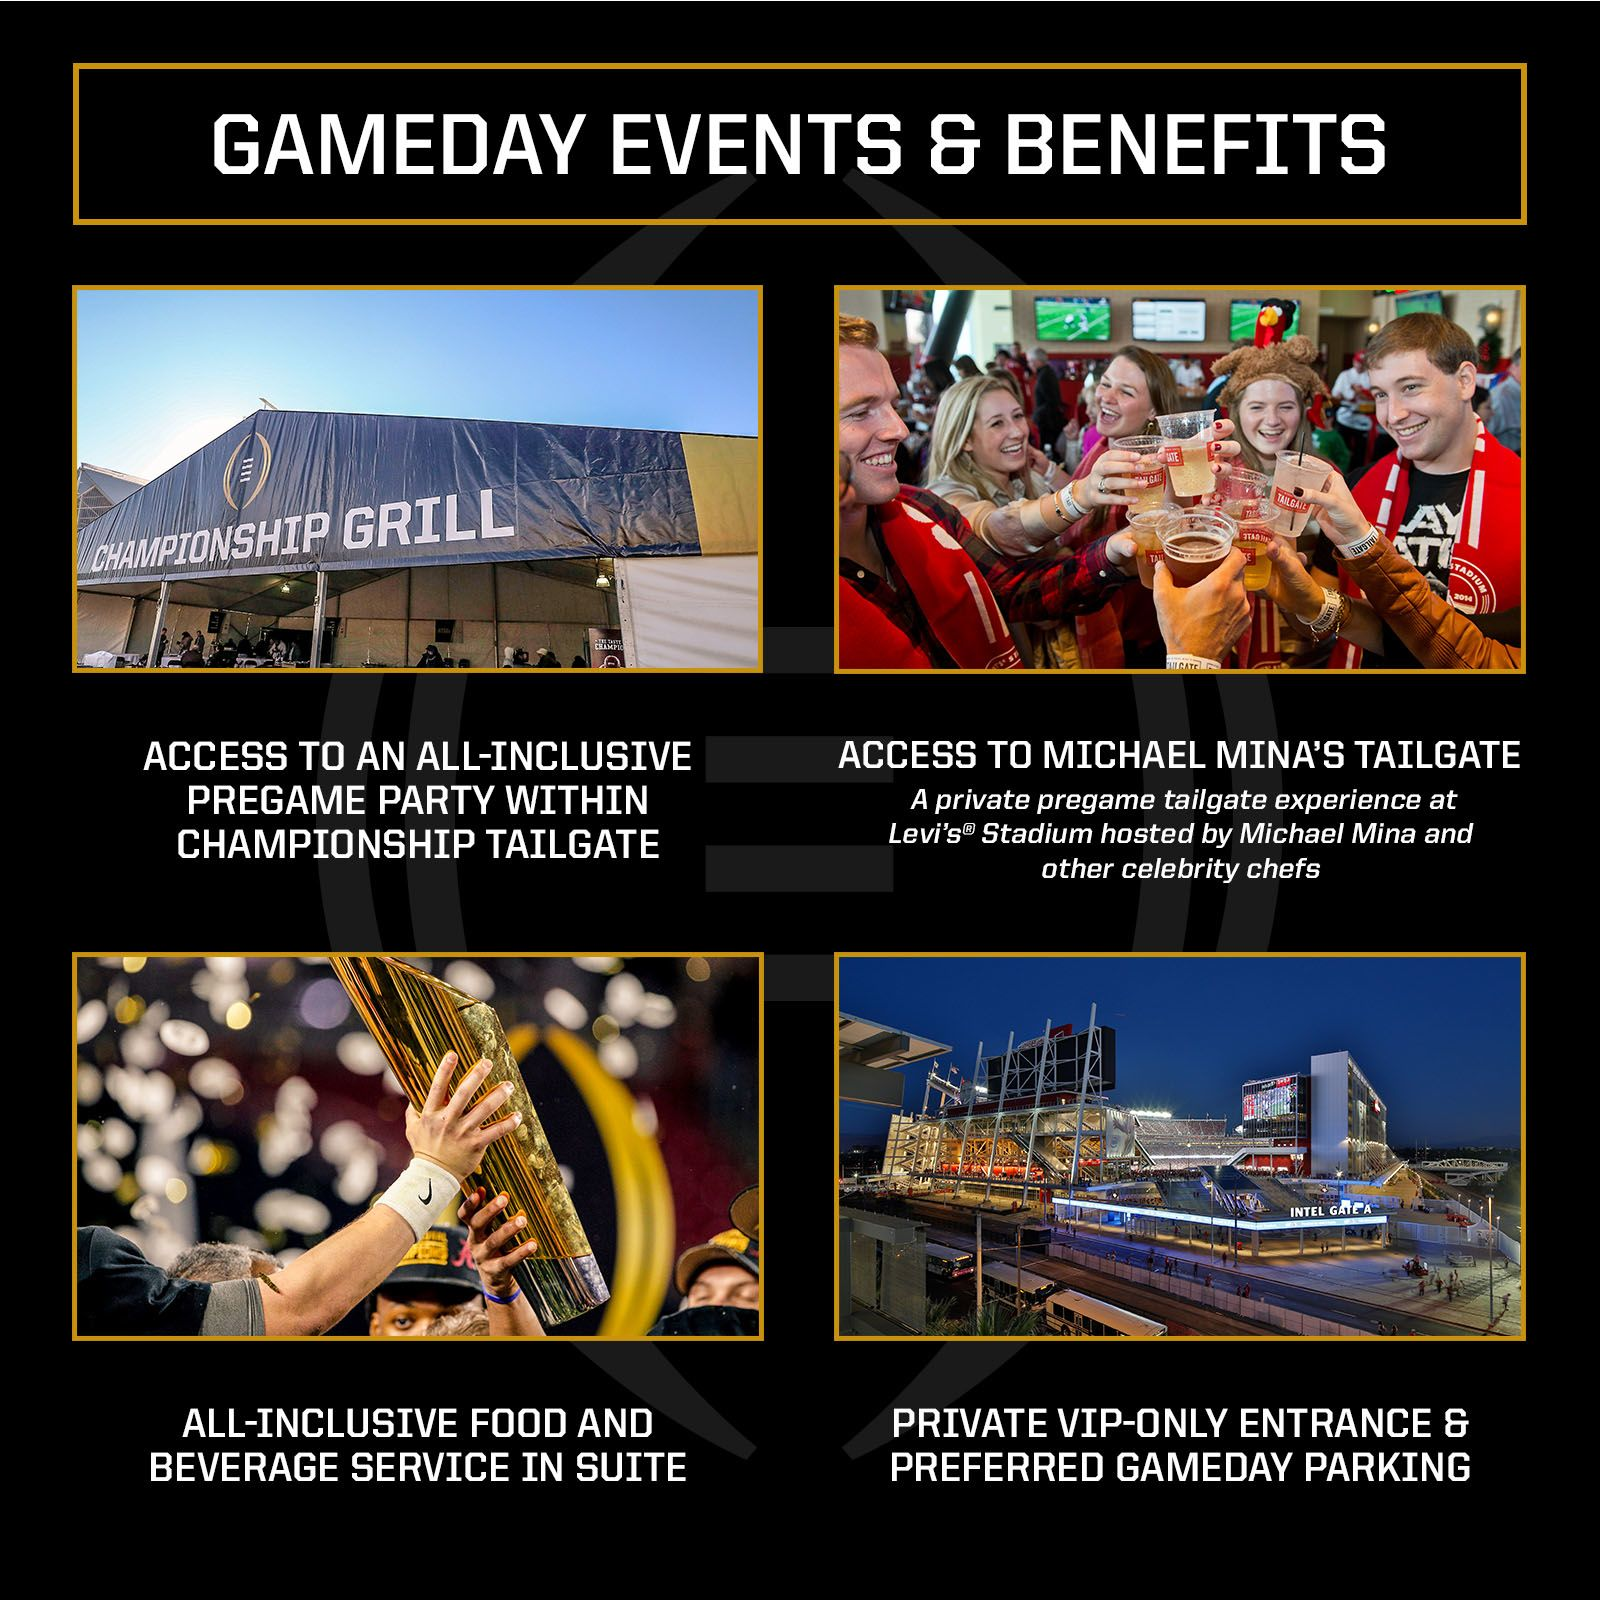 CFP-SuitePackage-Gameday Events & Benefits